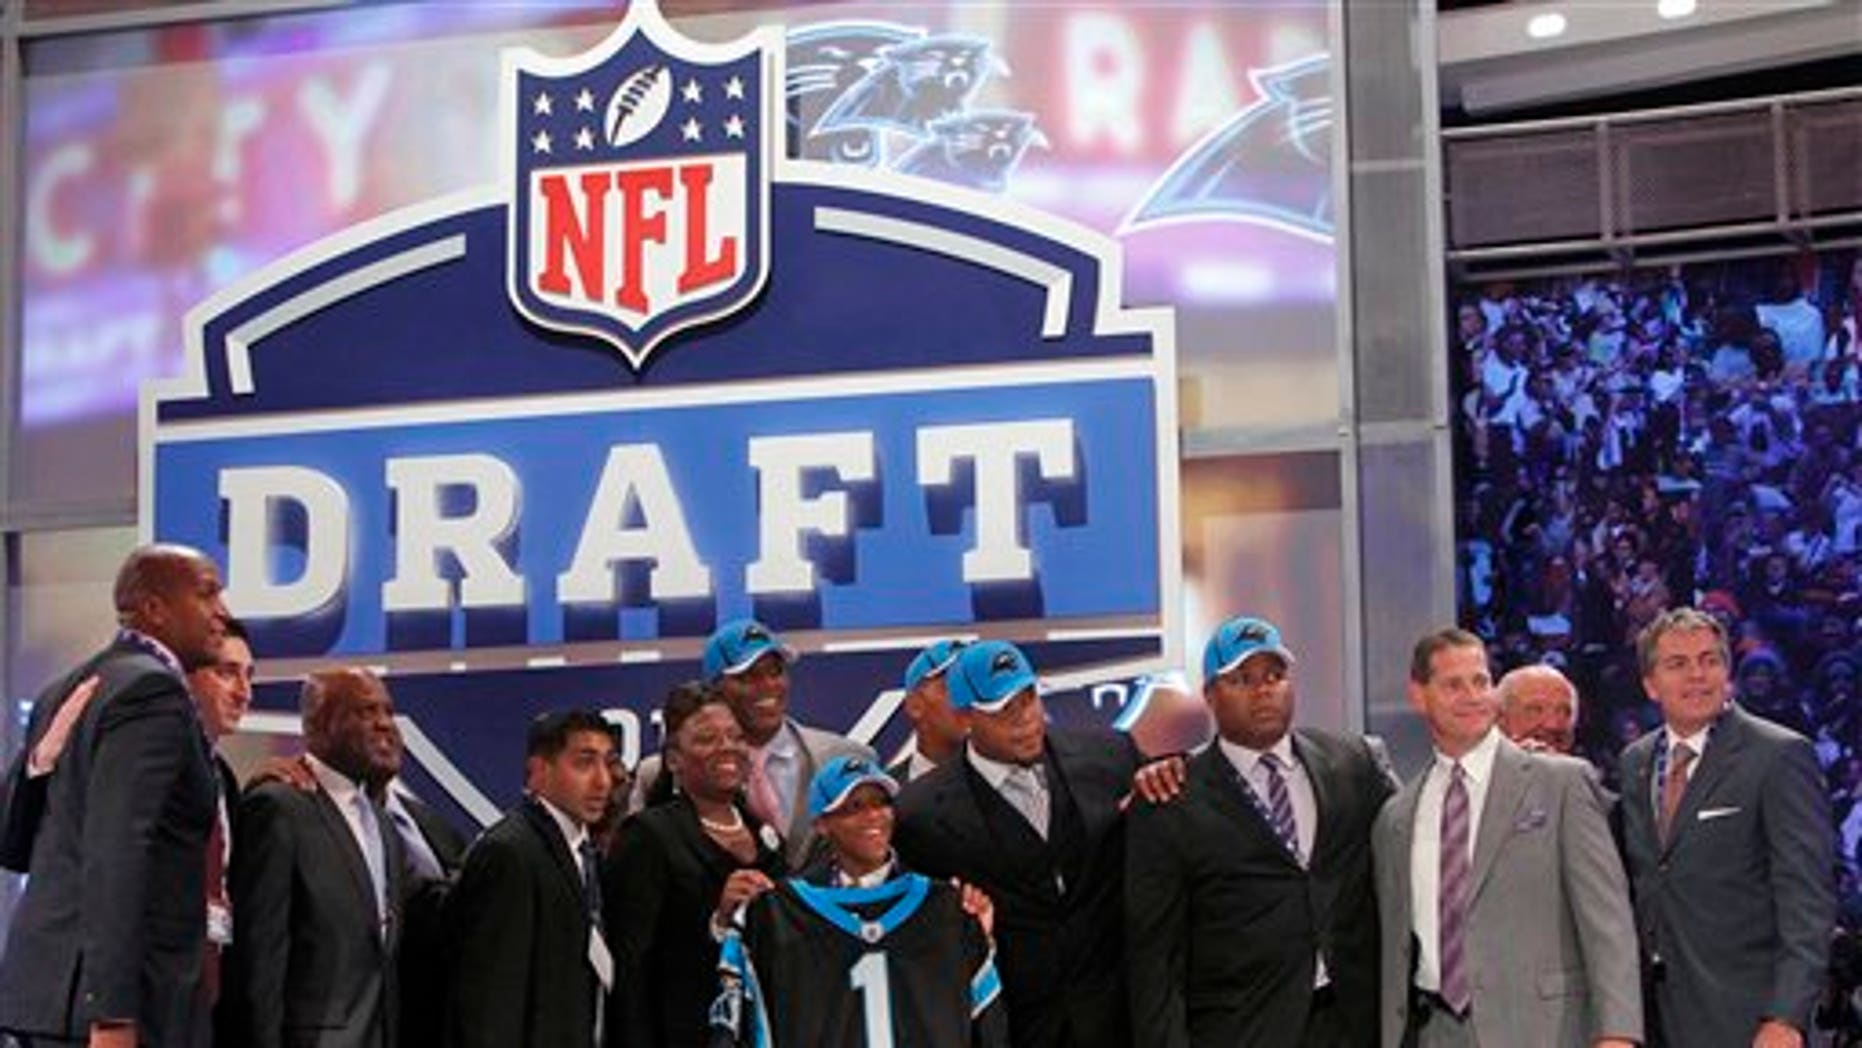 April 28: Auburn quarterback Cam Newton, rear center, poses with family and friends including Auburn coach Gene Chizik, third from right, after he was selected as the No. 1 overall by the Carolina Panthers in the first round of the NFL football draft at Radio City Music Hall in New York. (AP)